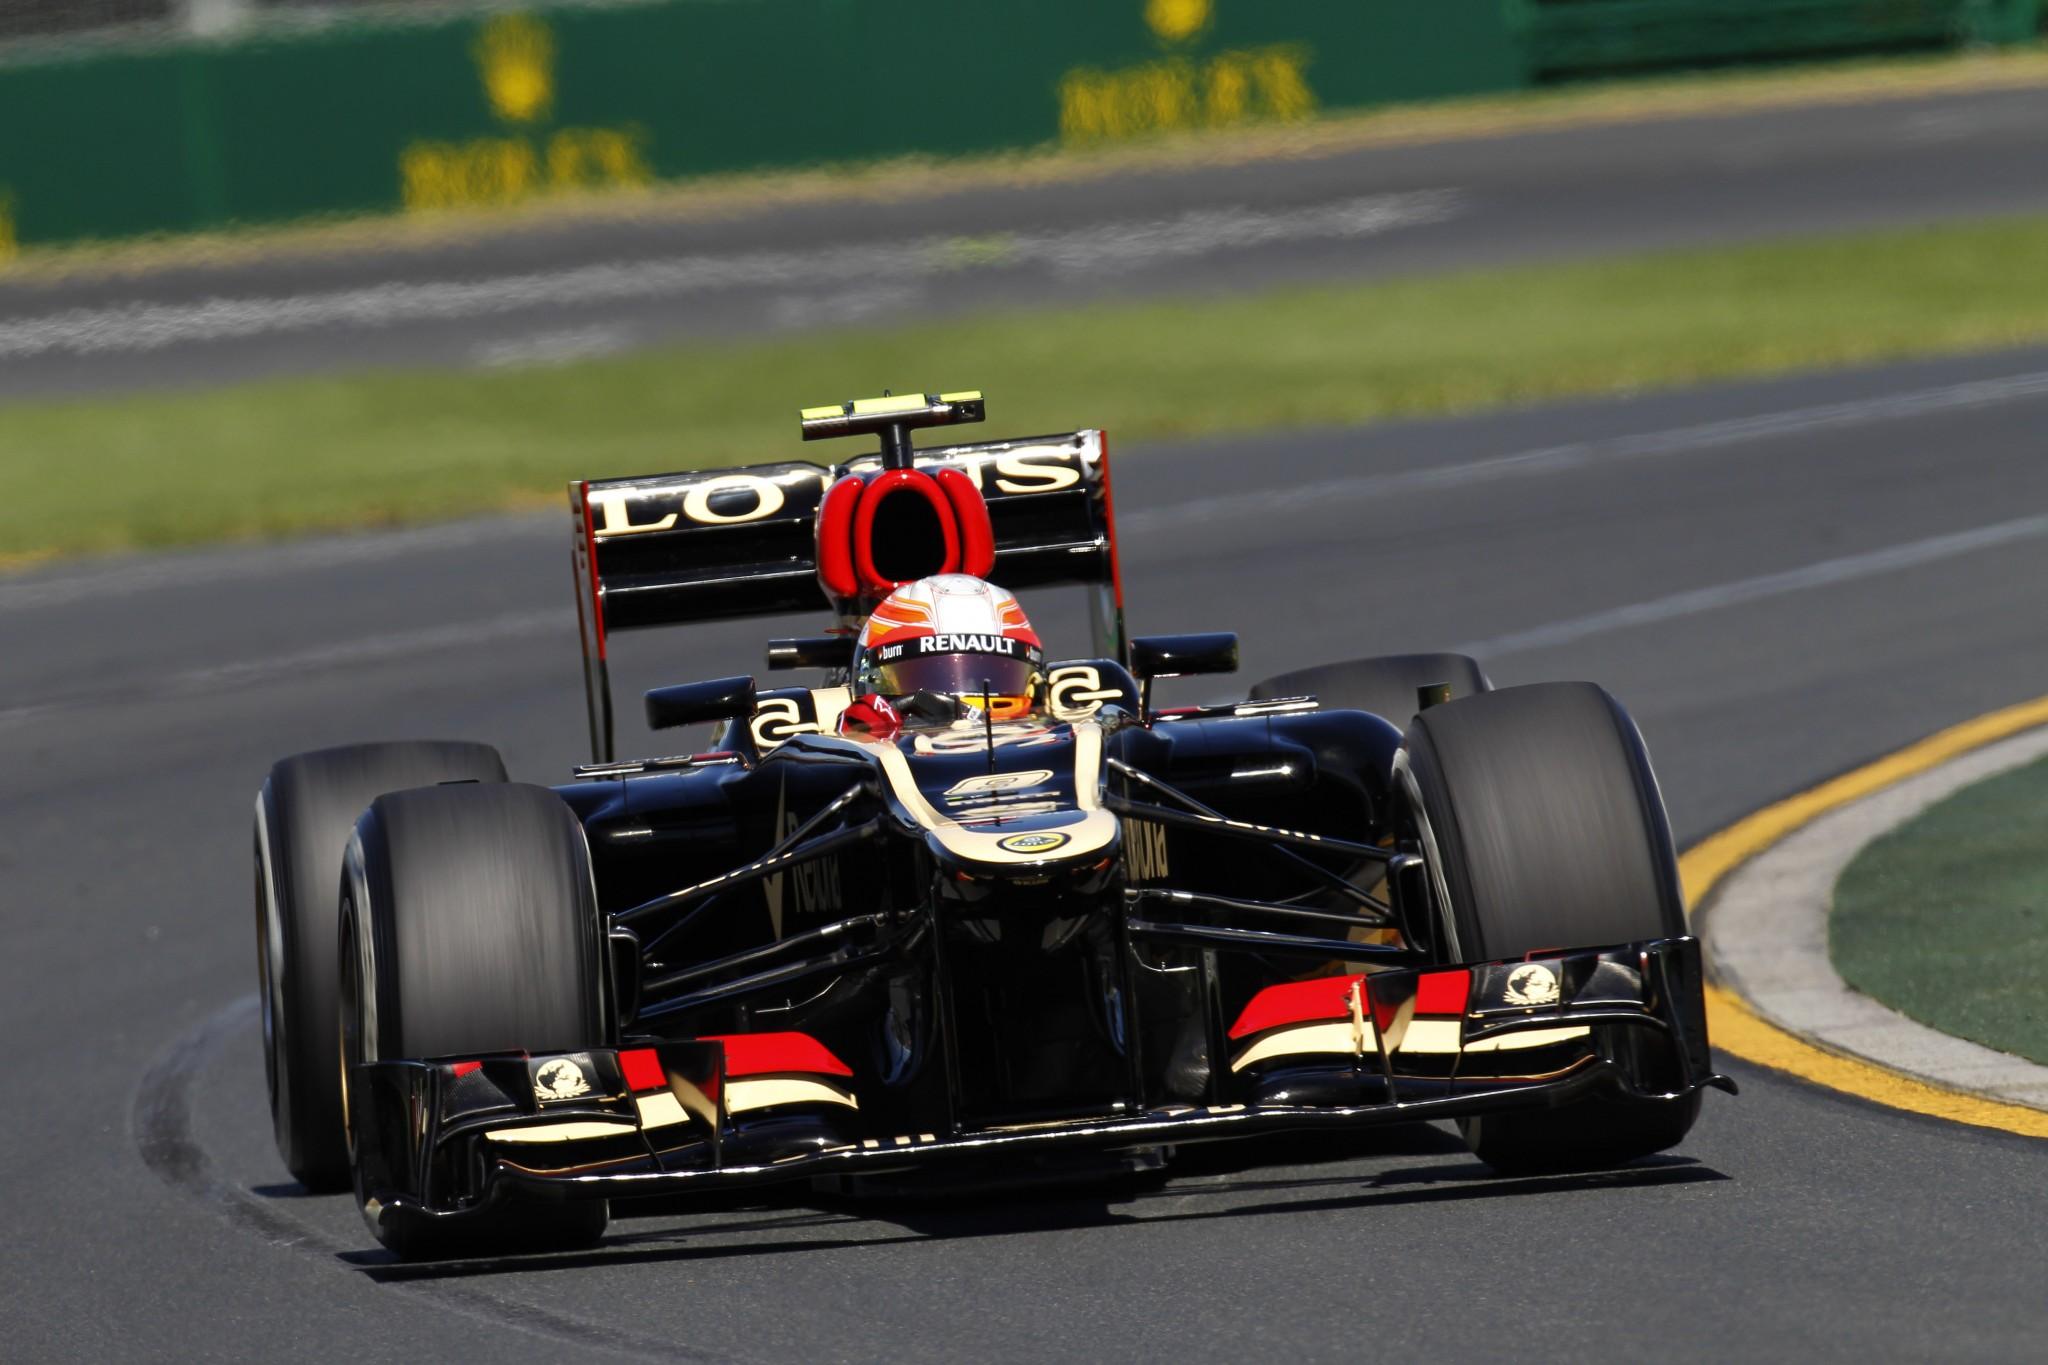 Lotus F1 Team Australian Gp Friday Practice Seloc